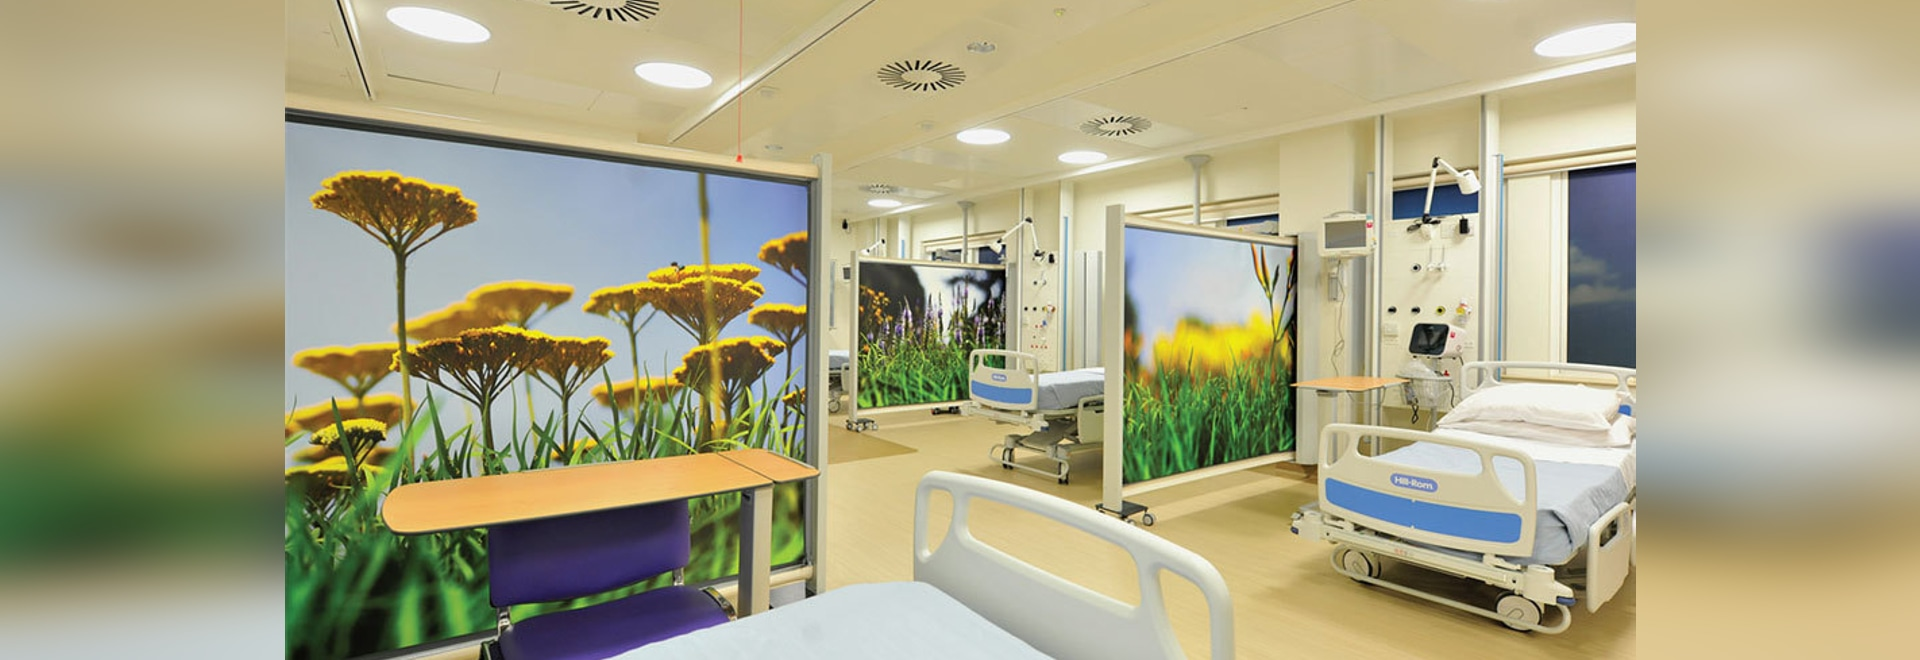 Hospital privacy screens on wheels KwickScreens at hospital ward in The National Hospital for Neurology and Neurosurgery, London.